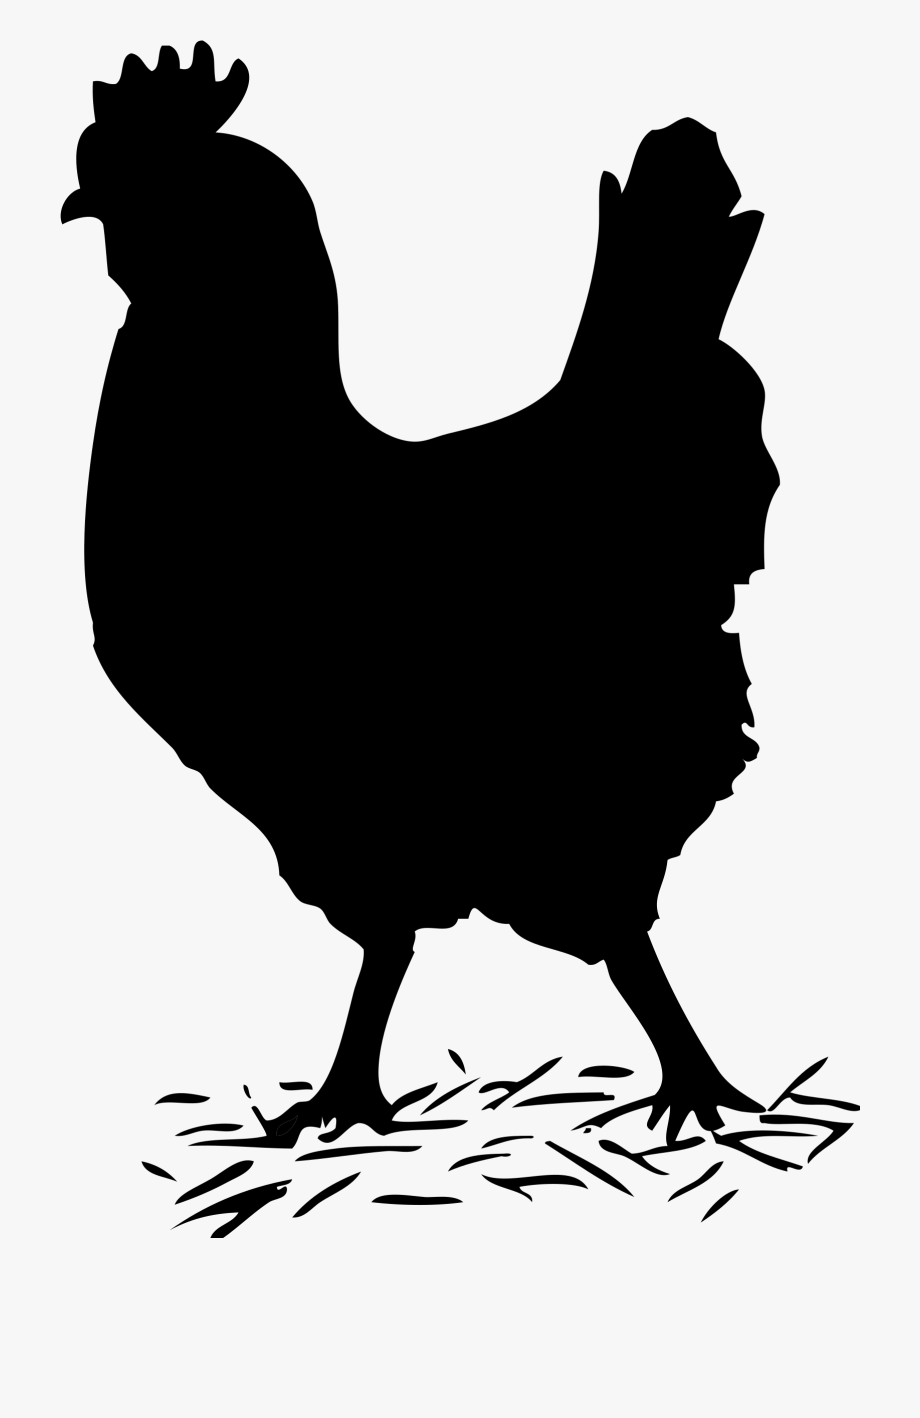 Hen clipart male chicken. Shapes black and white